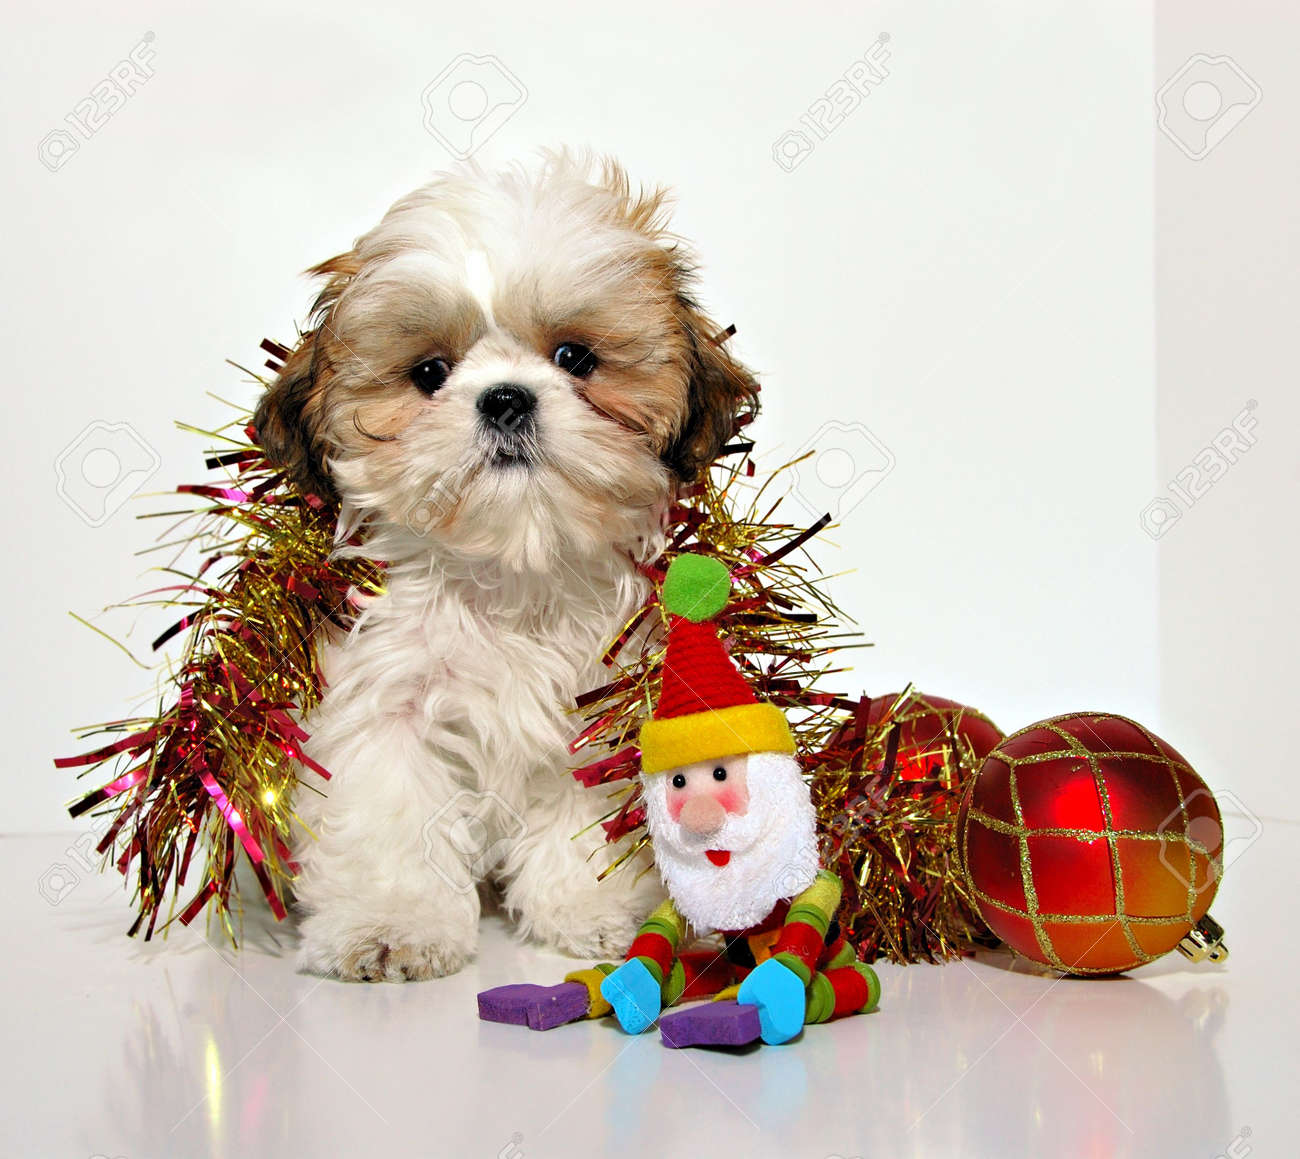 A Puppy For Christmas.Christmas Puppy A Shih Tzu Puppy And Christmas Holiday Ornaments